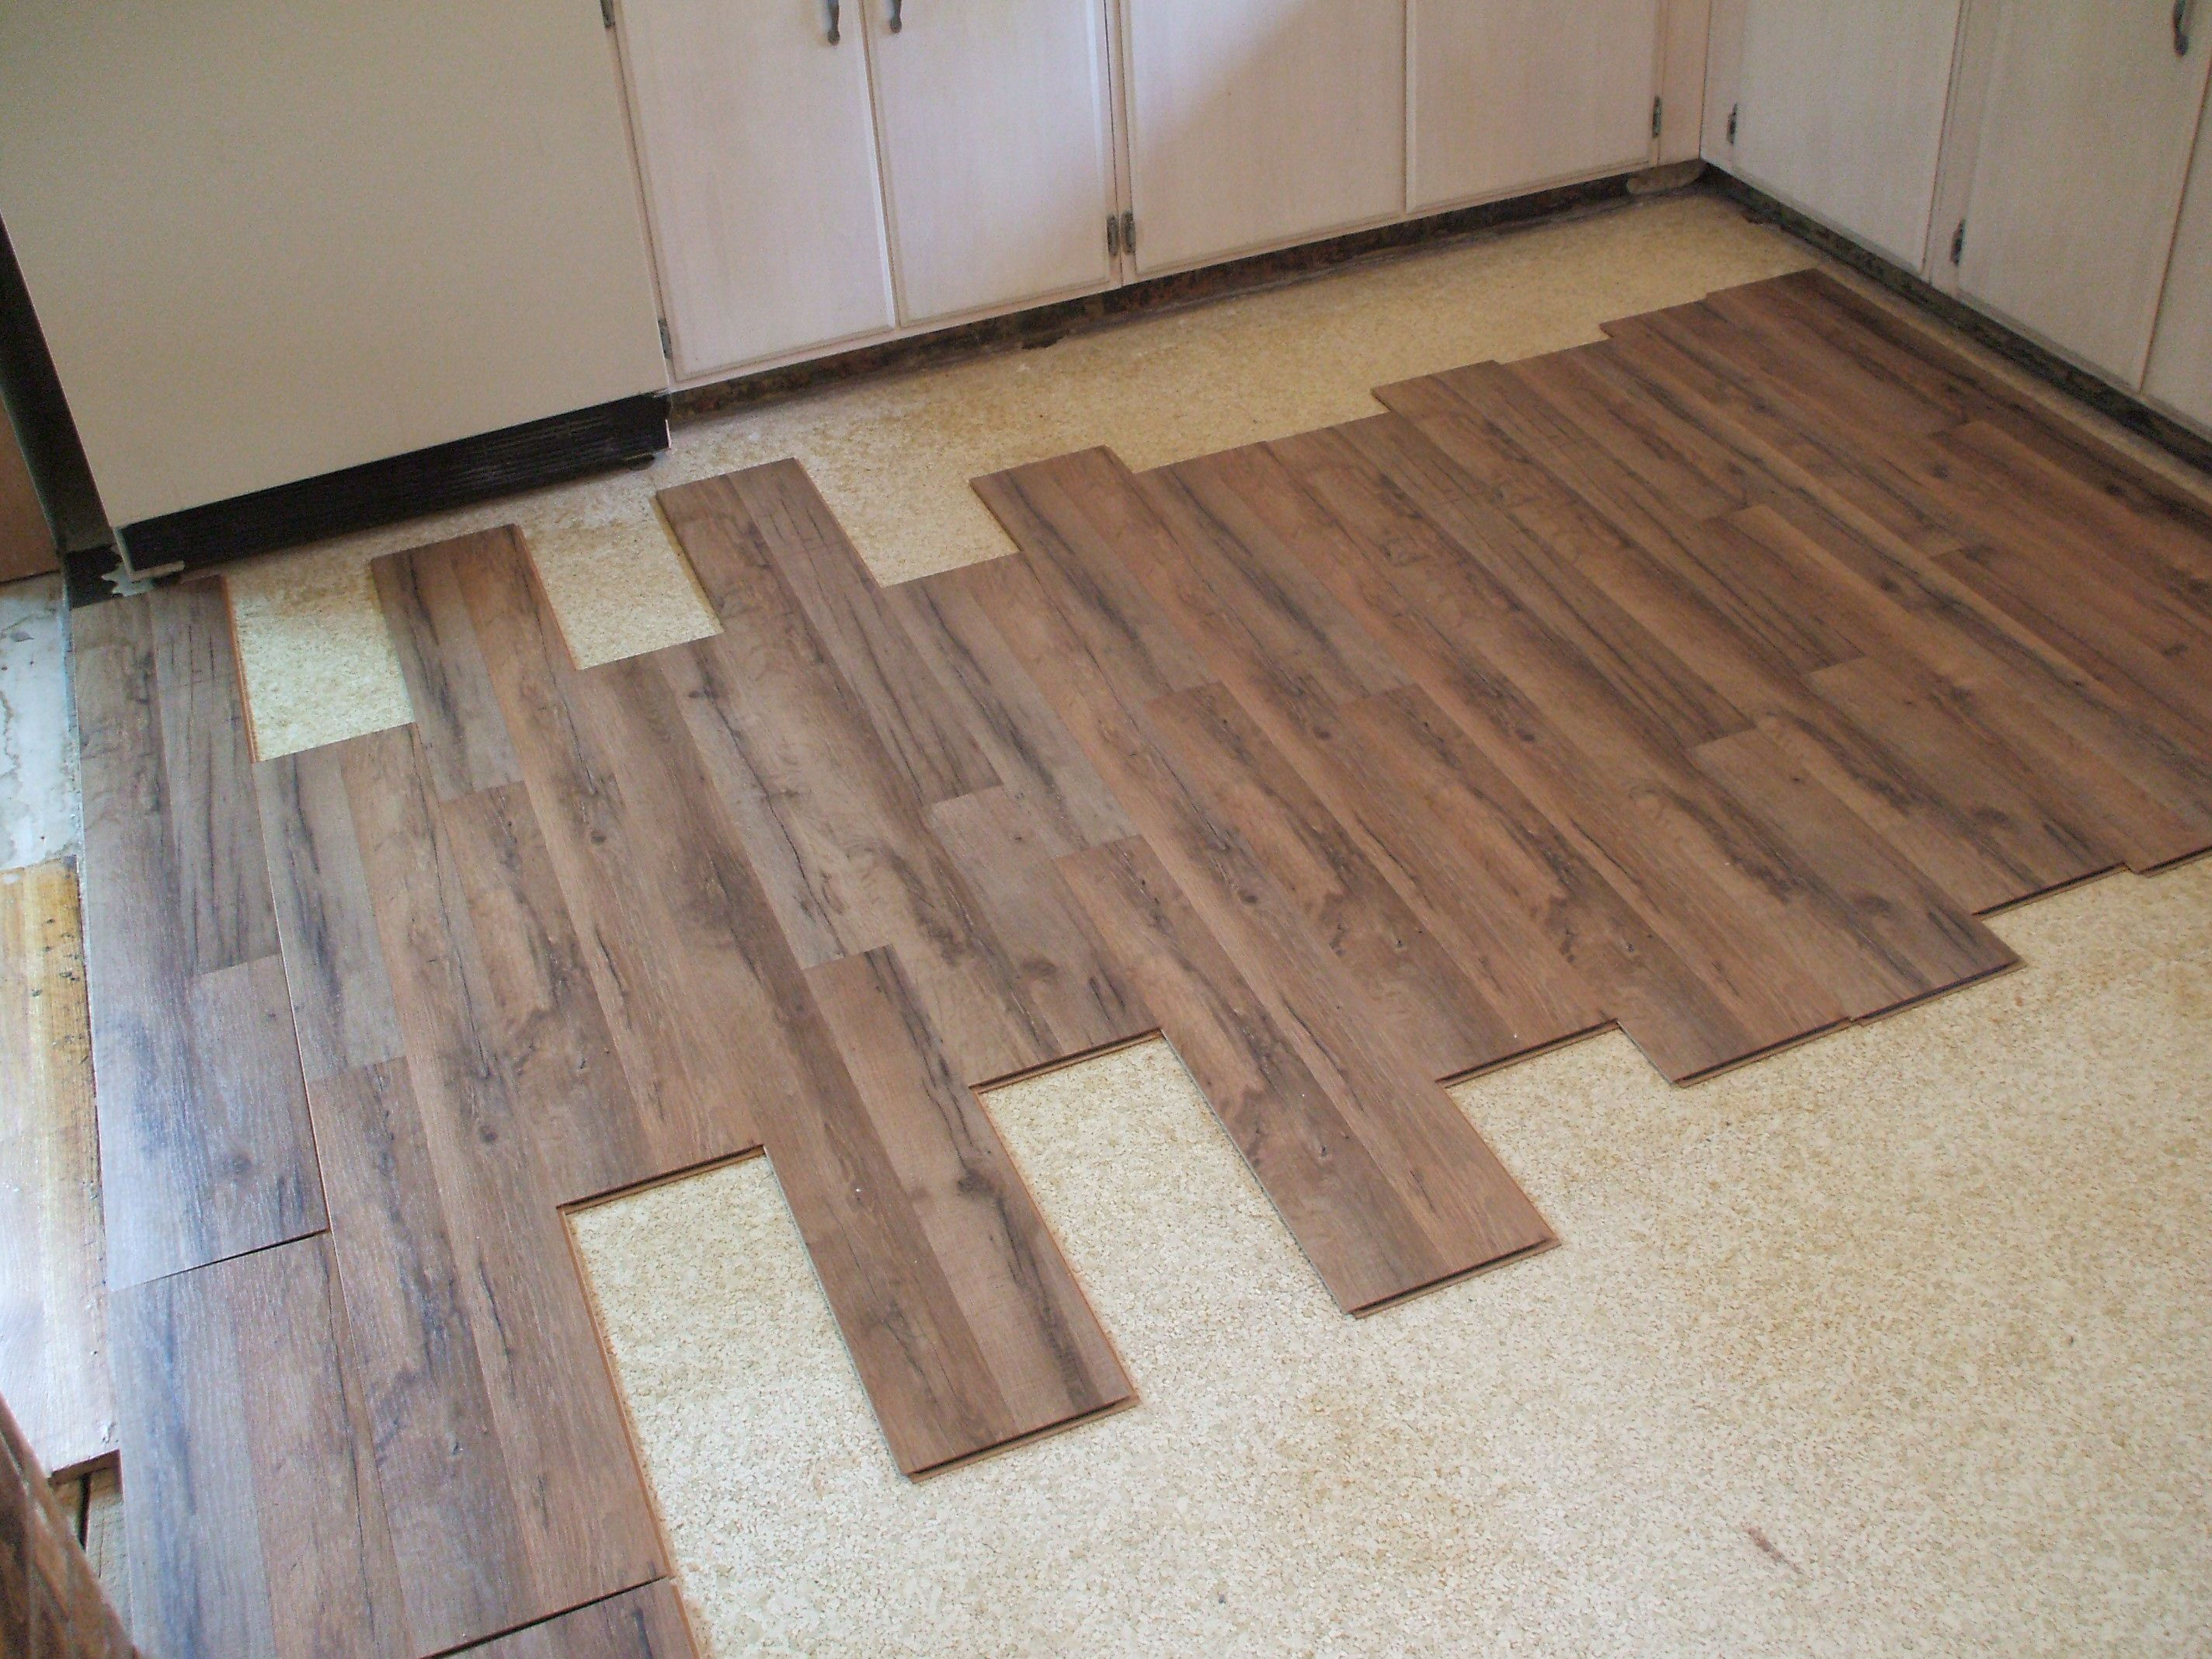 diy hardwood floor installation on concrete of laminate flooring installation made easy for installing laminate eyeballing layout 56a49d075f9b58b7d0d7d693 jpg